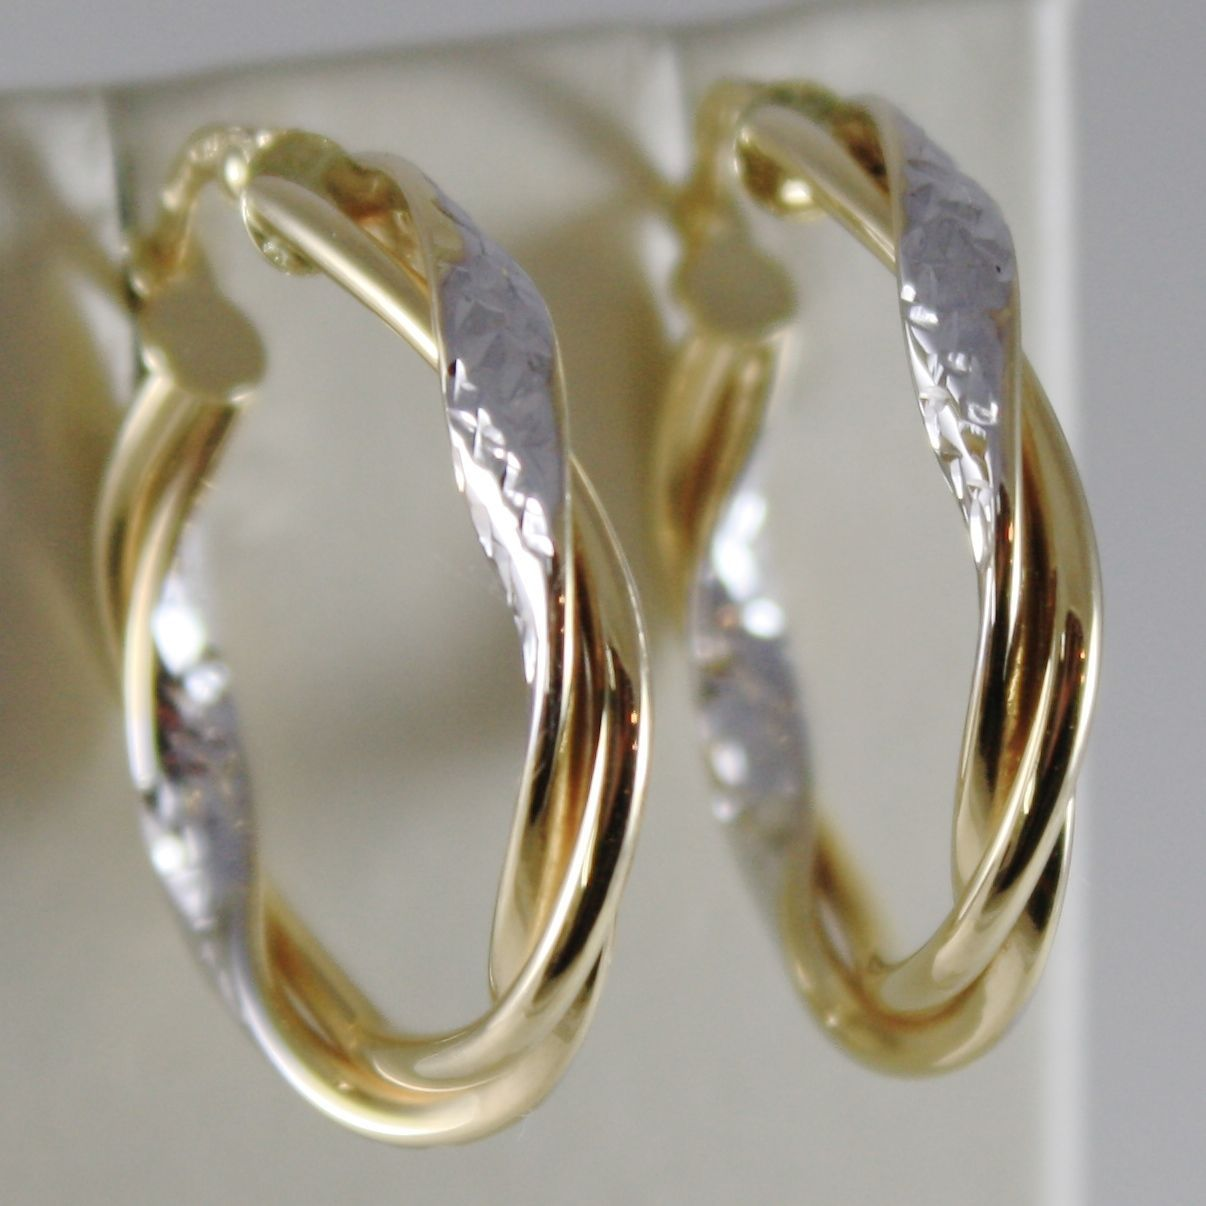 18K YELLOW WHITE GOLD TWISTED EARRINGS WORKED HOOPS HOOP 25 MM MADE IN ITALY